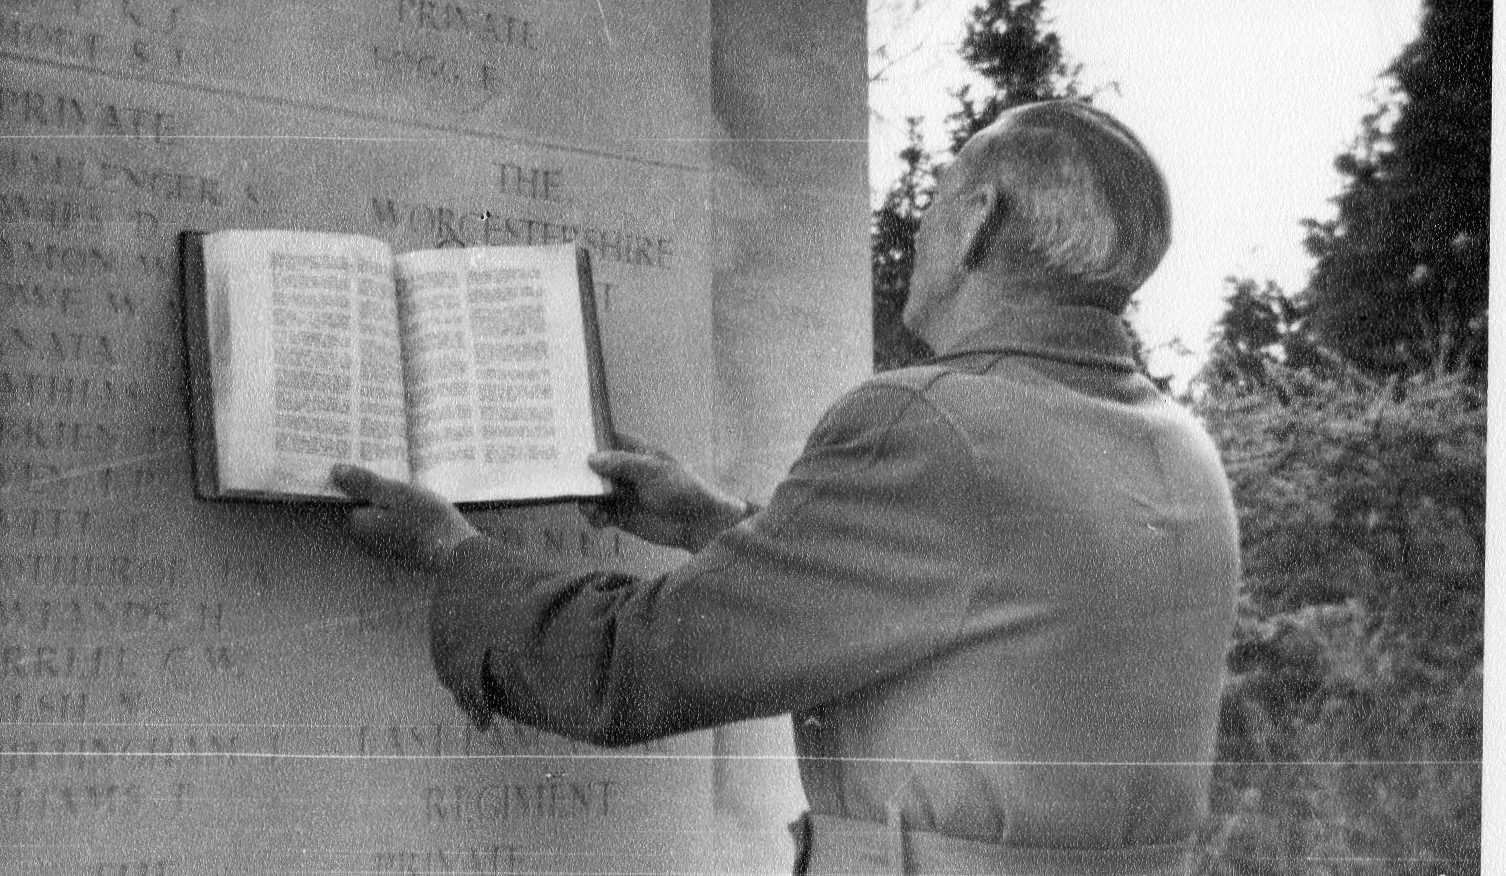 Ted Fogg visiting Bayeux Cemetery and seeing his brother Ernest's name on the memorial